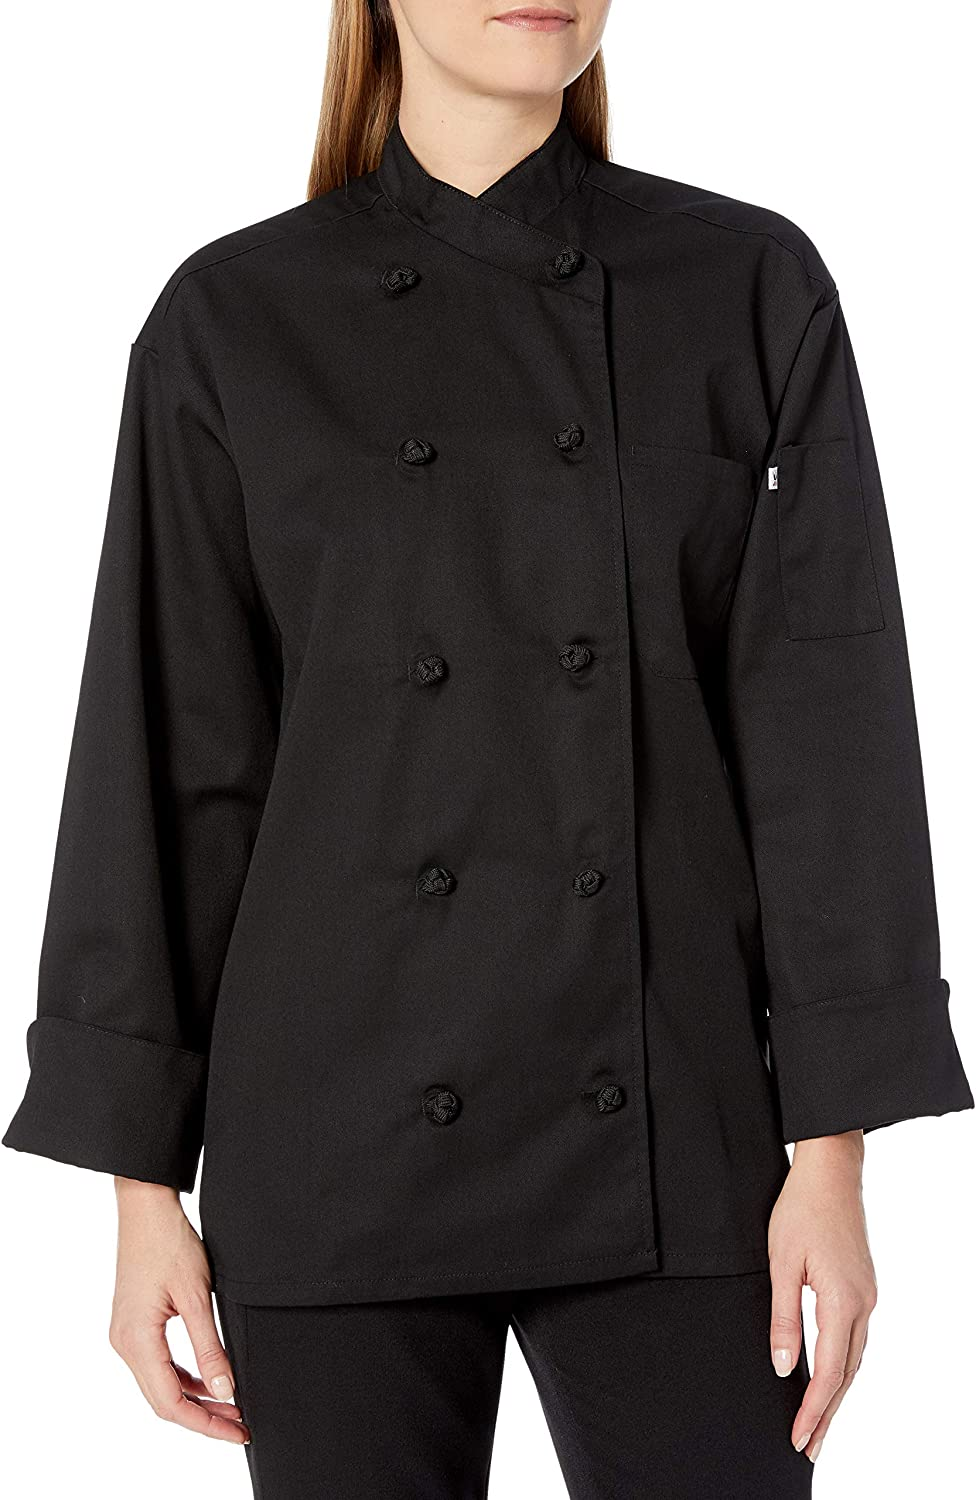 Uncommon Threads Men's Plus Size 0435-0110, Black, 6XL: Chefs Jackets: Clothing